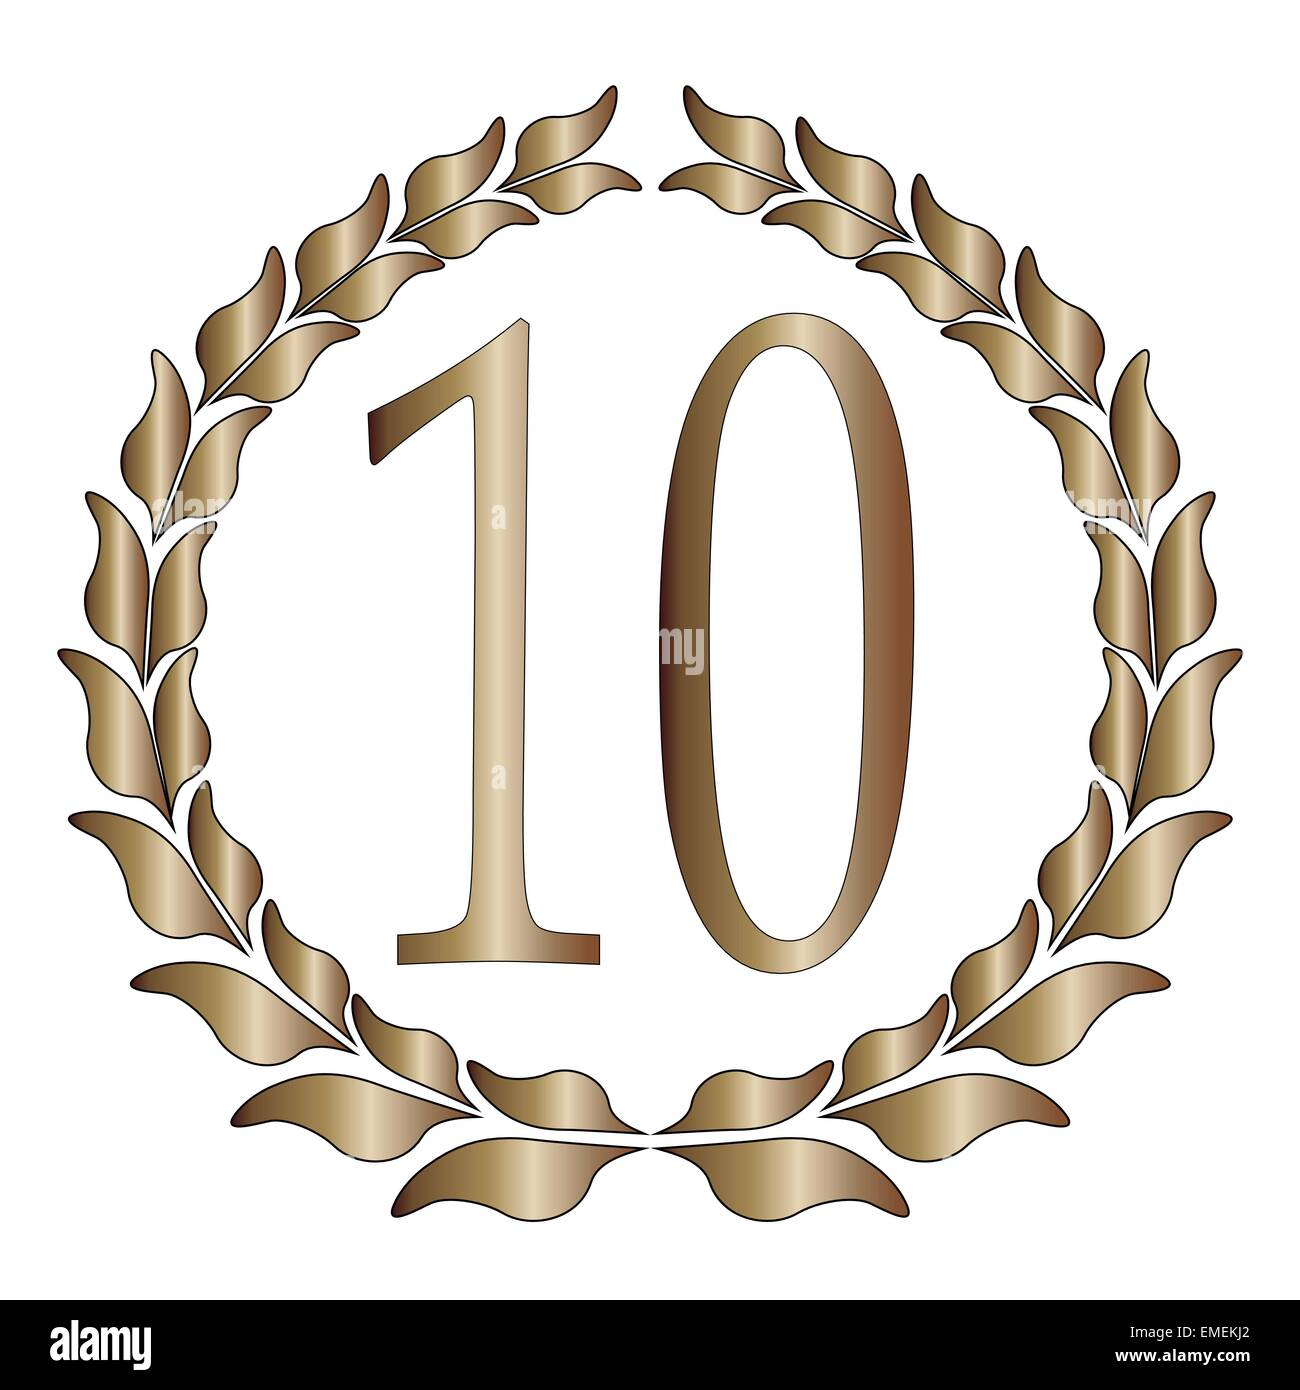 10th Anniversary - Stock Vector